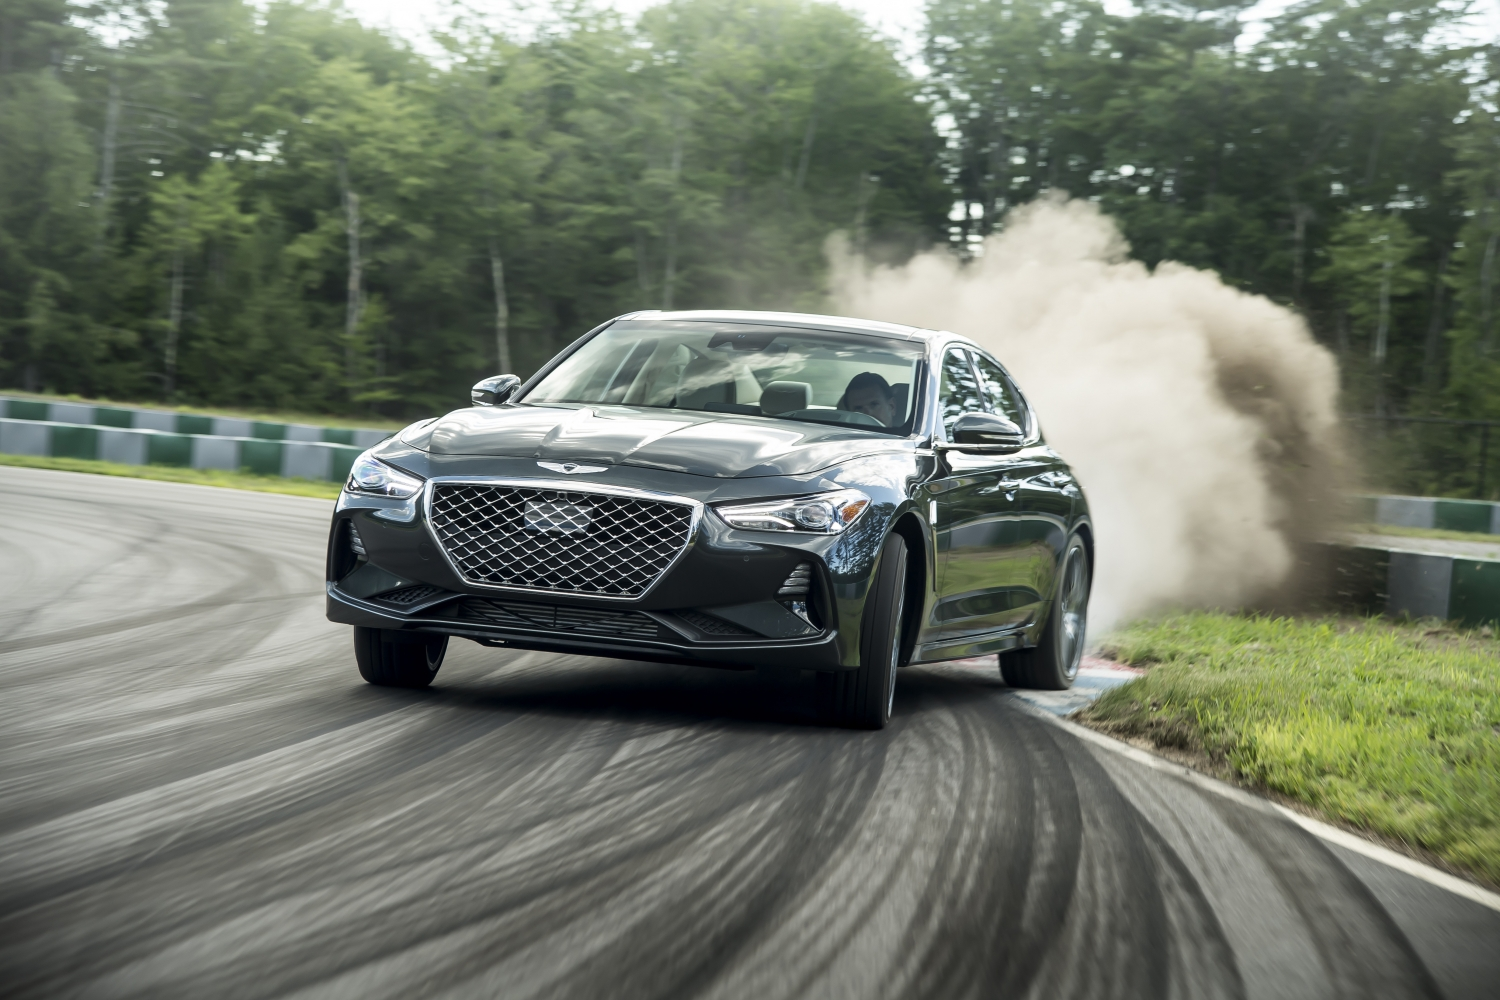 2019 Genesis G70 dust kicked up on track